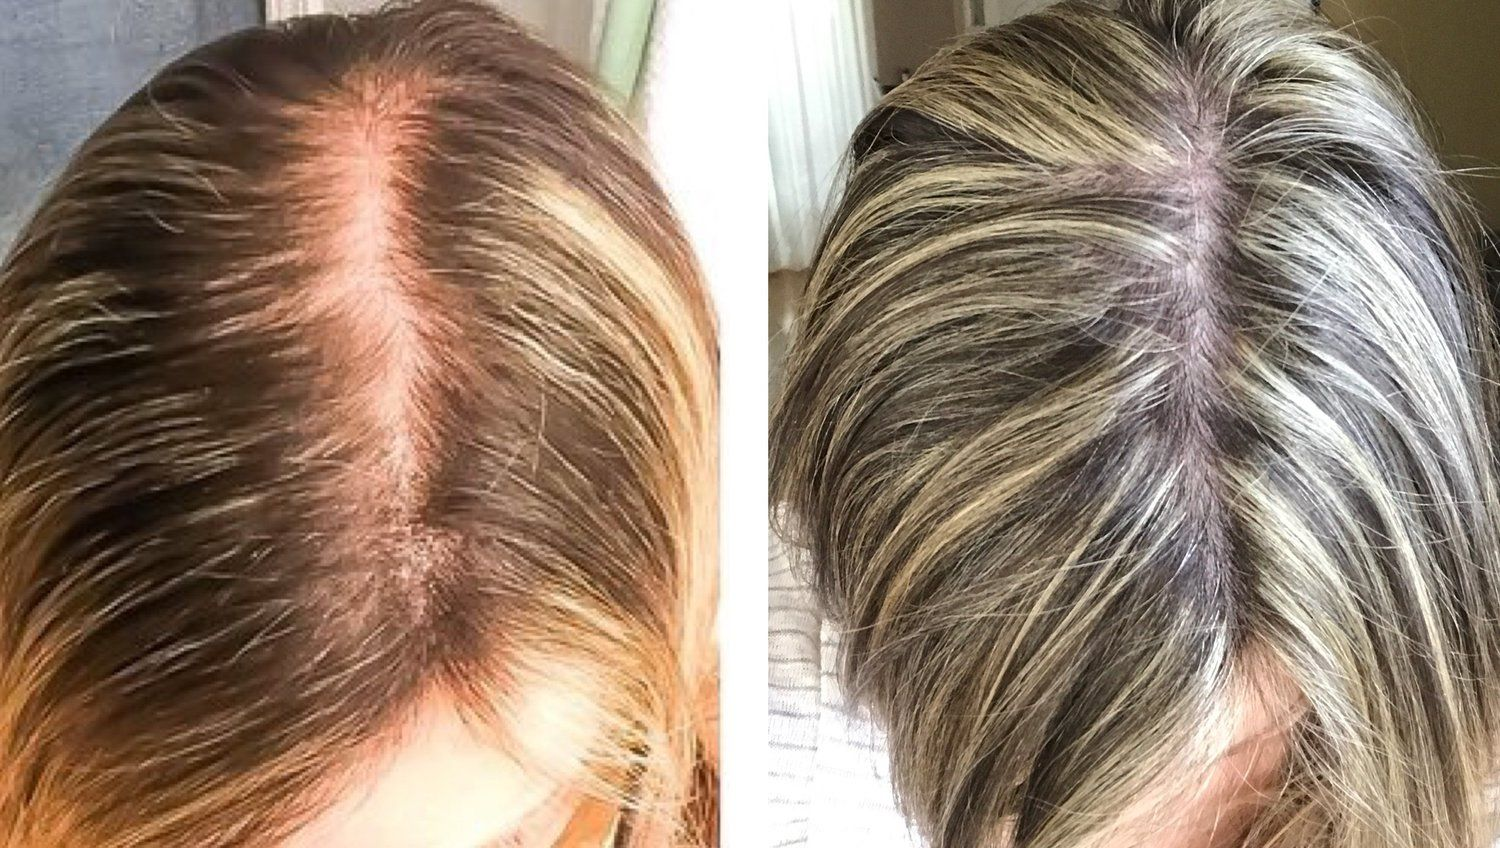 Women And Hair Loss: Causes, Solutions, and Support   Hair ...